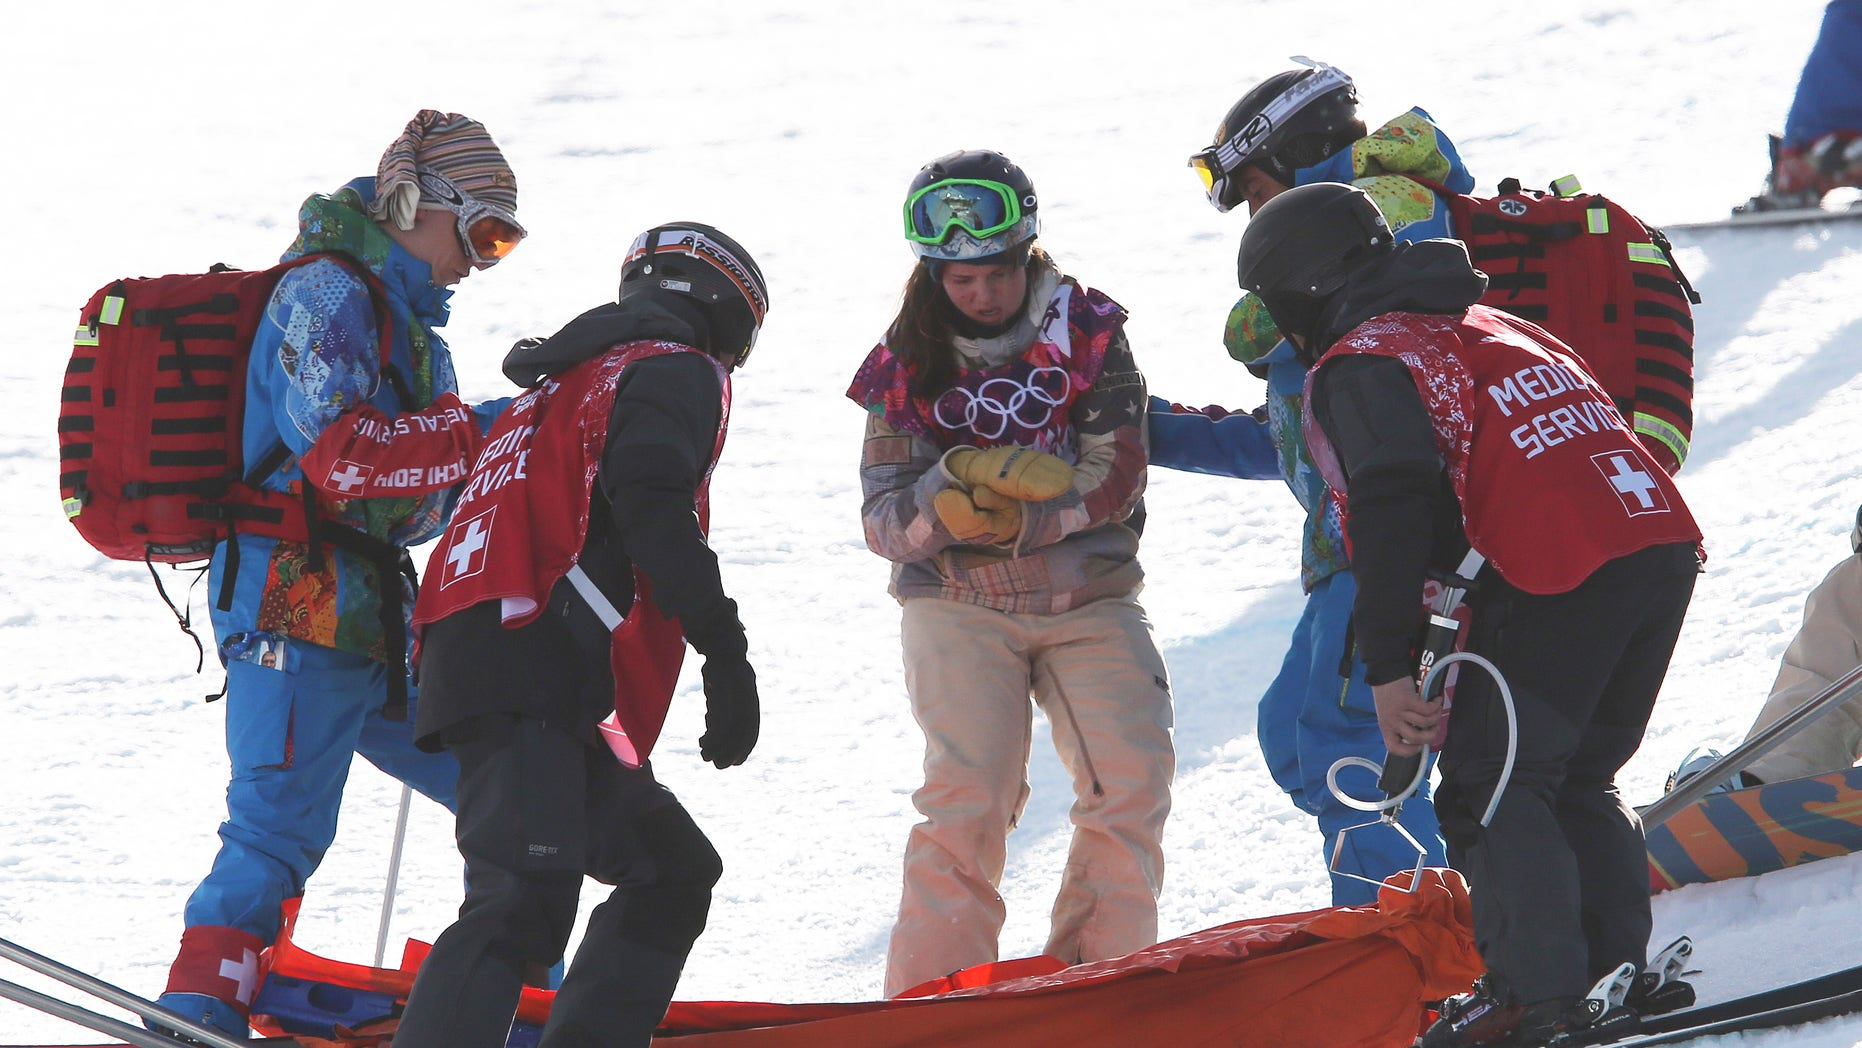 Feb. 12, 2014: United States' Arielle Gold is assisted after injuring her hand in a crash during the women's snowboard halfpipe qualifying at the Rosa Khutor Extreme Park, at the 2014 Winter Olympics in Krasnaya Polyana, Russia.